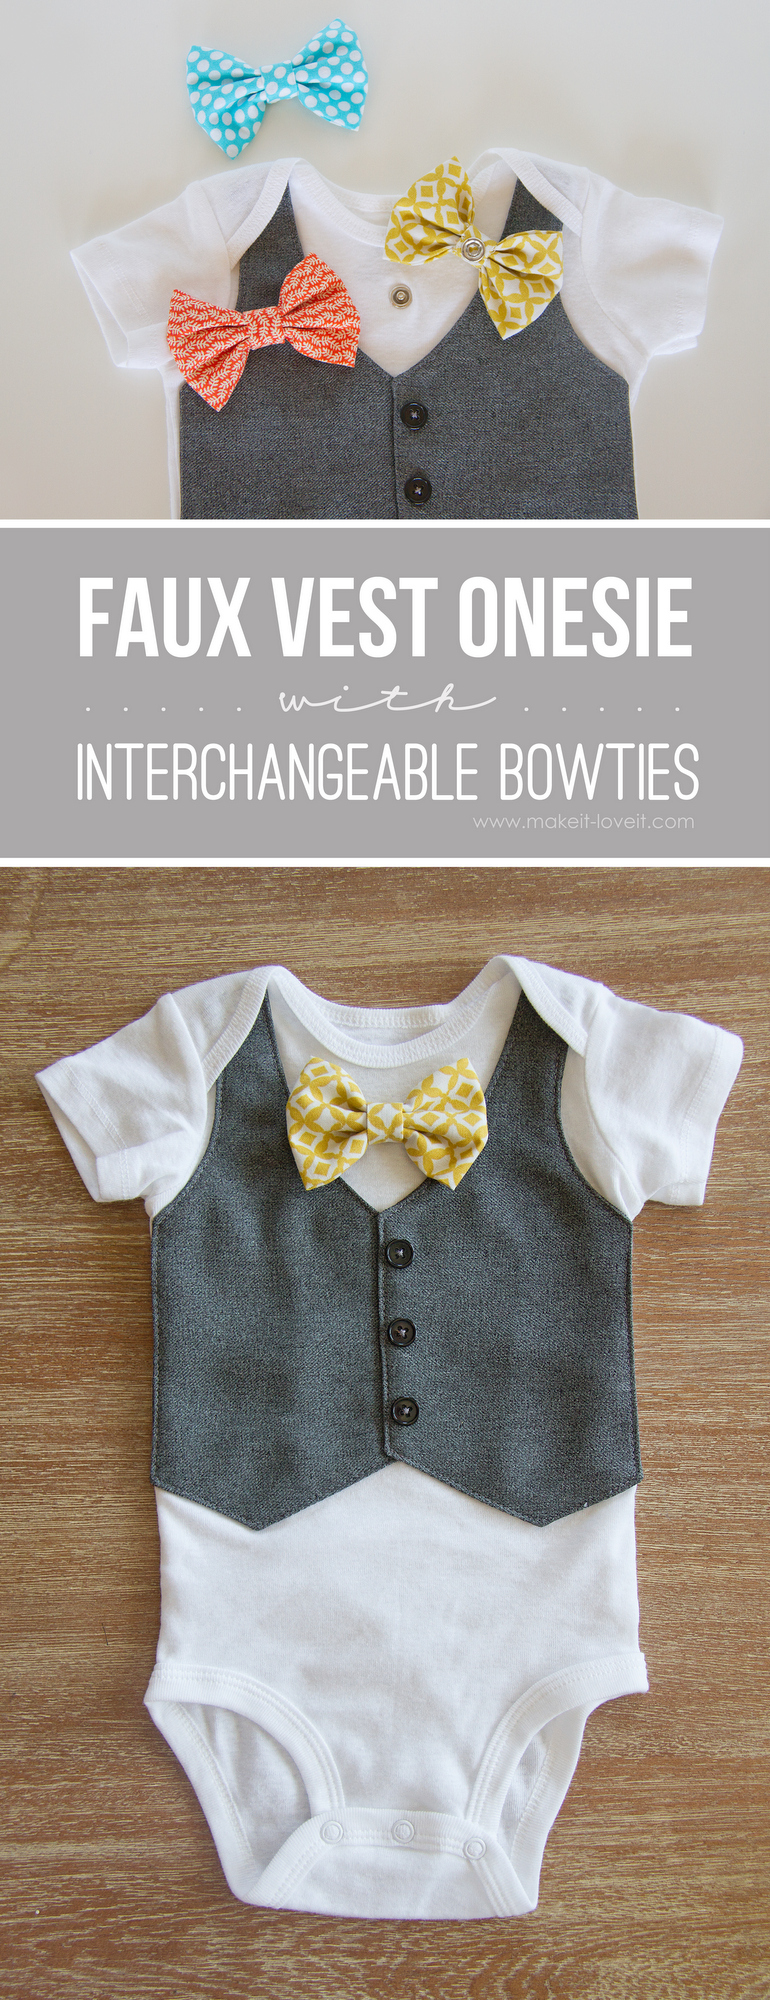 Faux Vest Onesie with Interchangeable Bowties